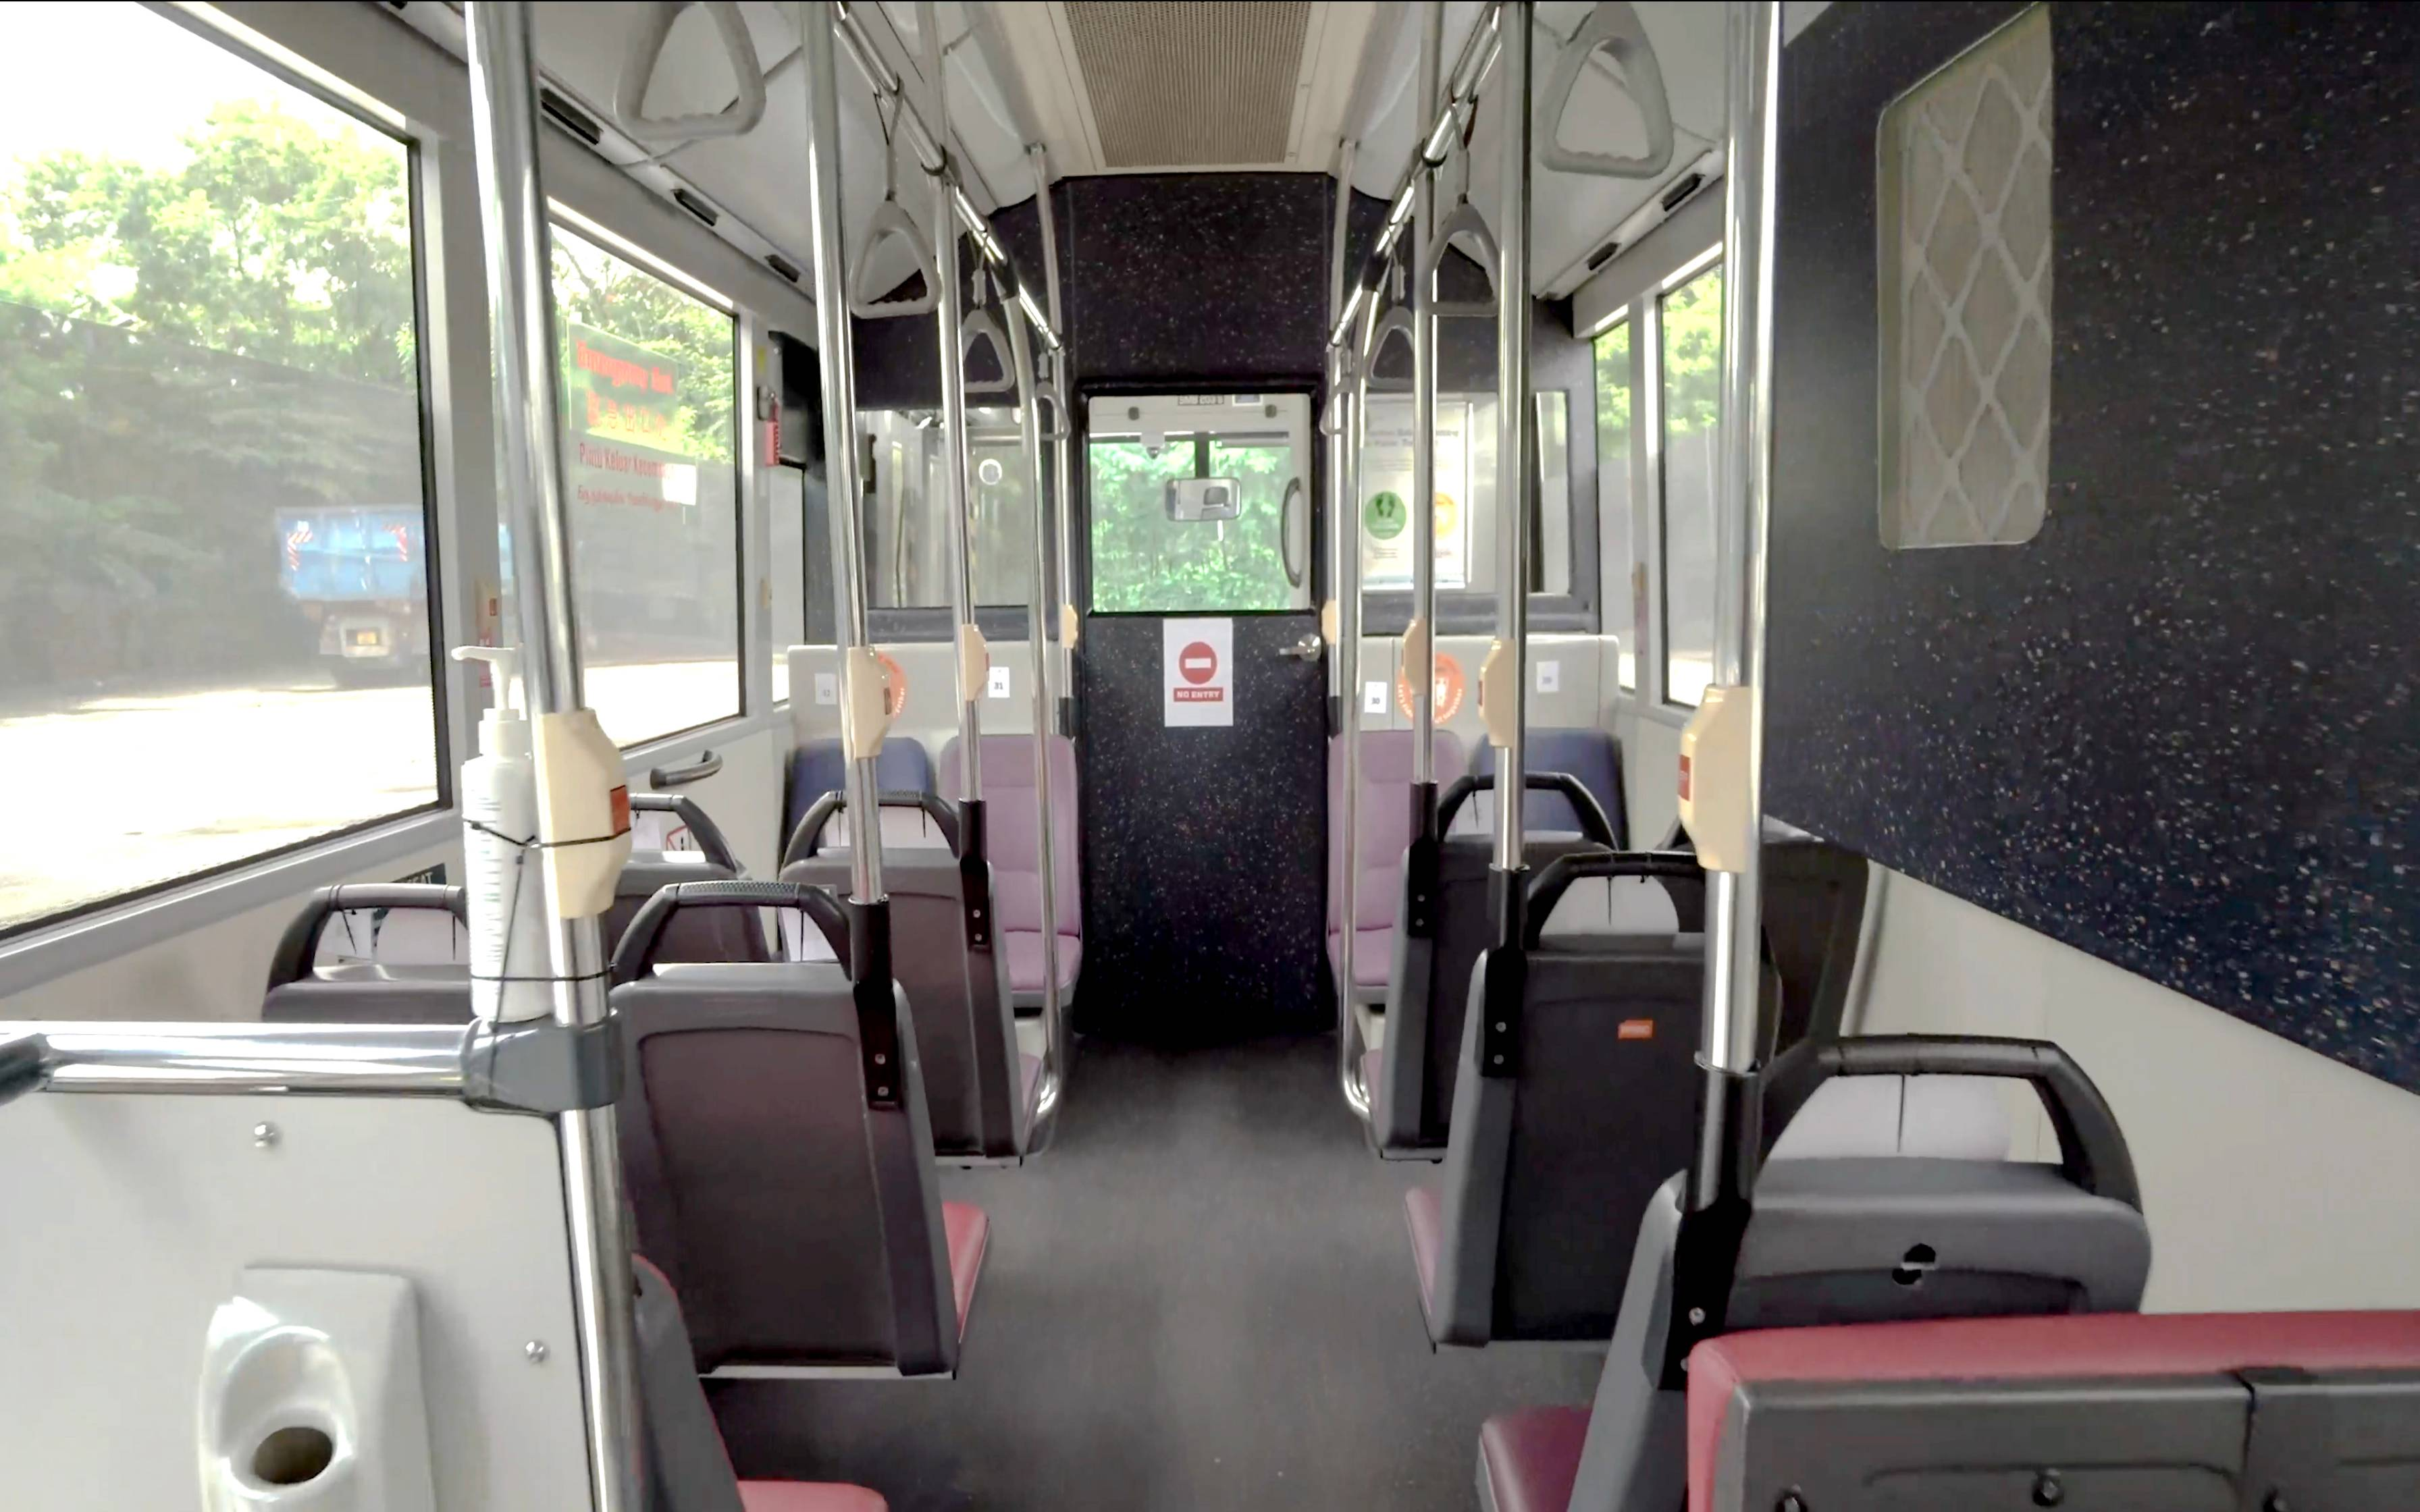 To ensure the safety of all on board, the COMET MAXI has the driver and the passengers located in two compartments separated by a completely sealed divider. Photo courtesy: SMRT